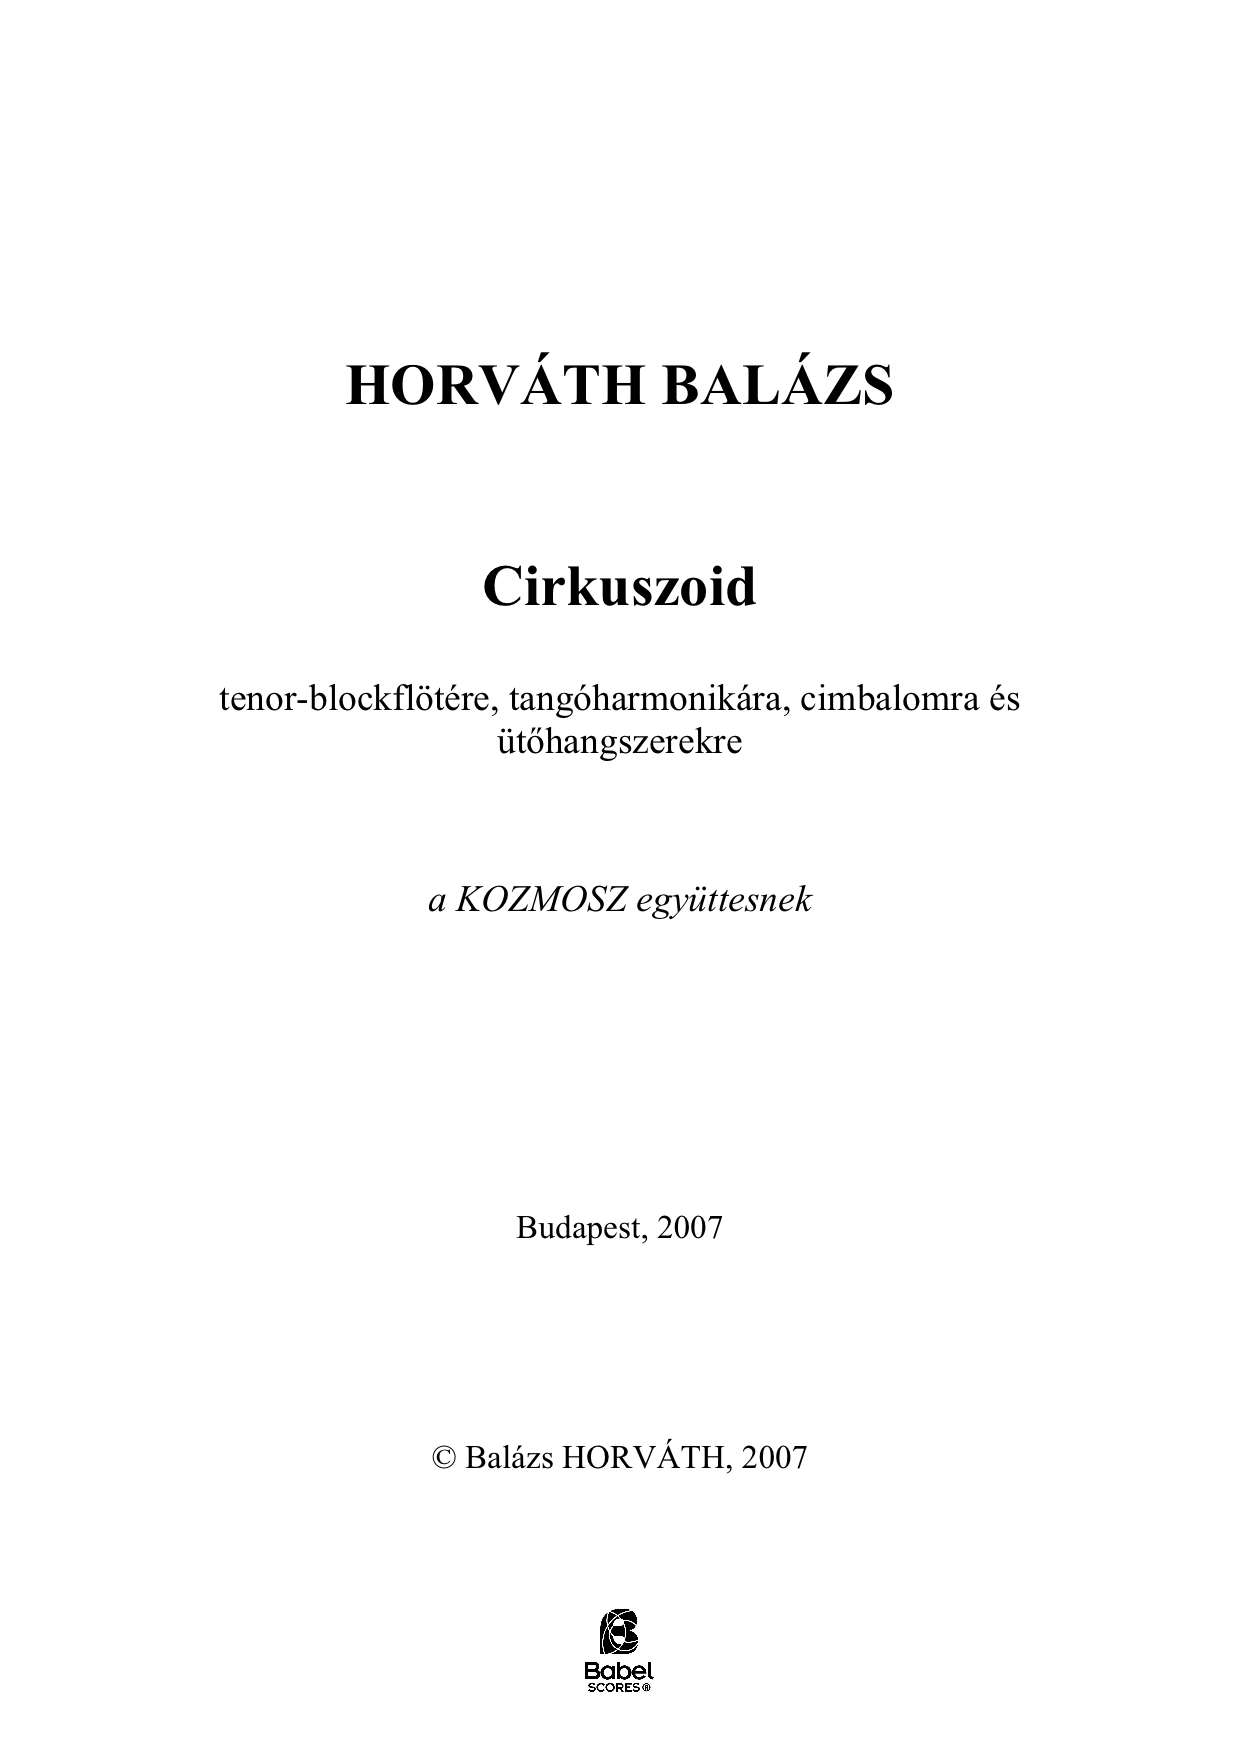 Cirkuszoid score version 1 A4 z 1 441